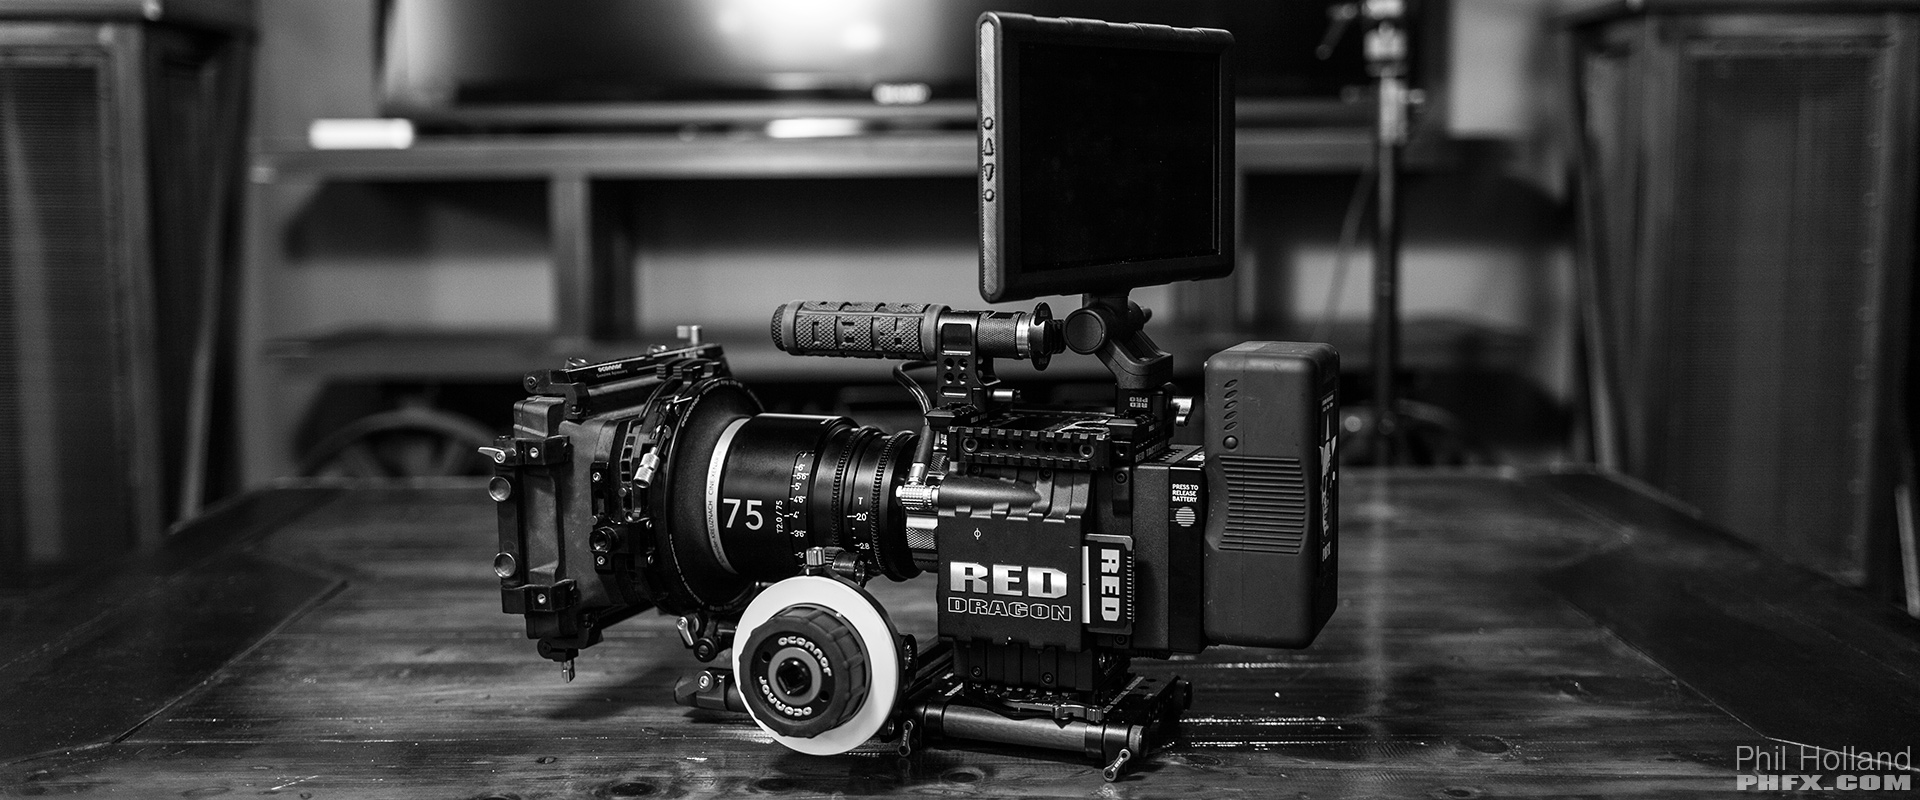 Red Epic Dragon #5232